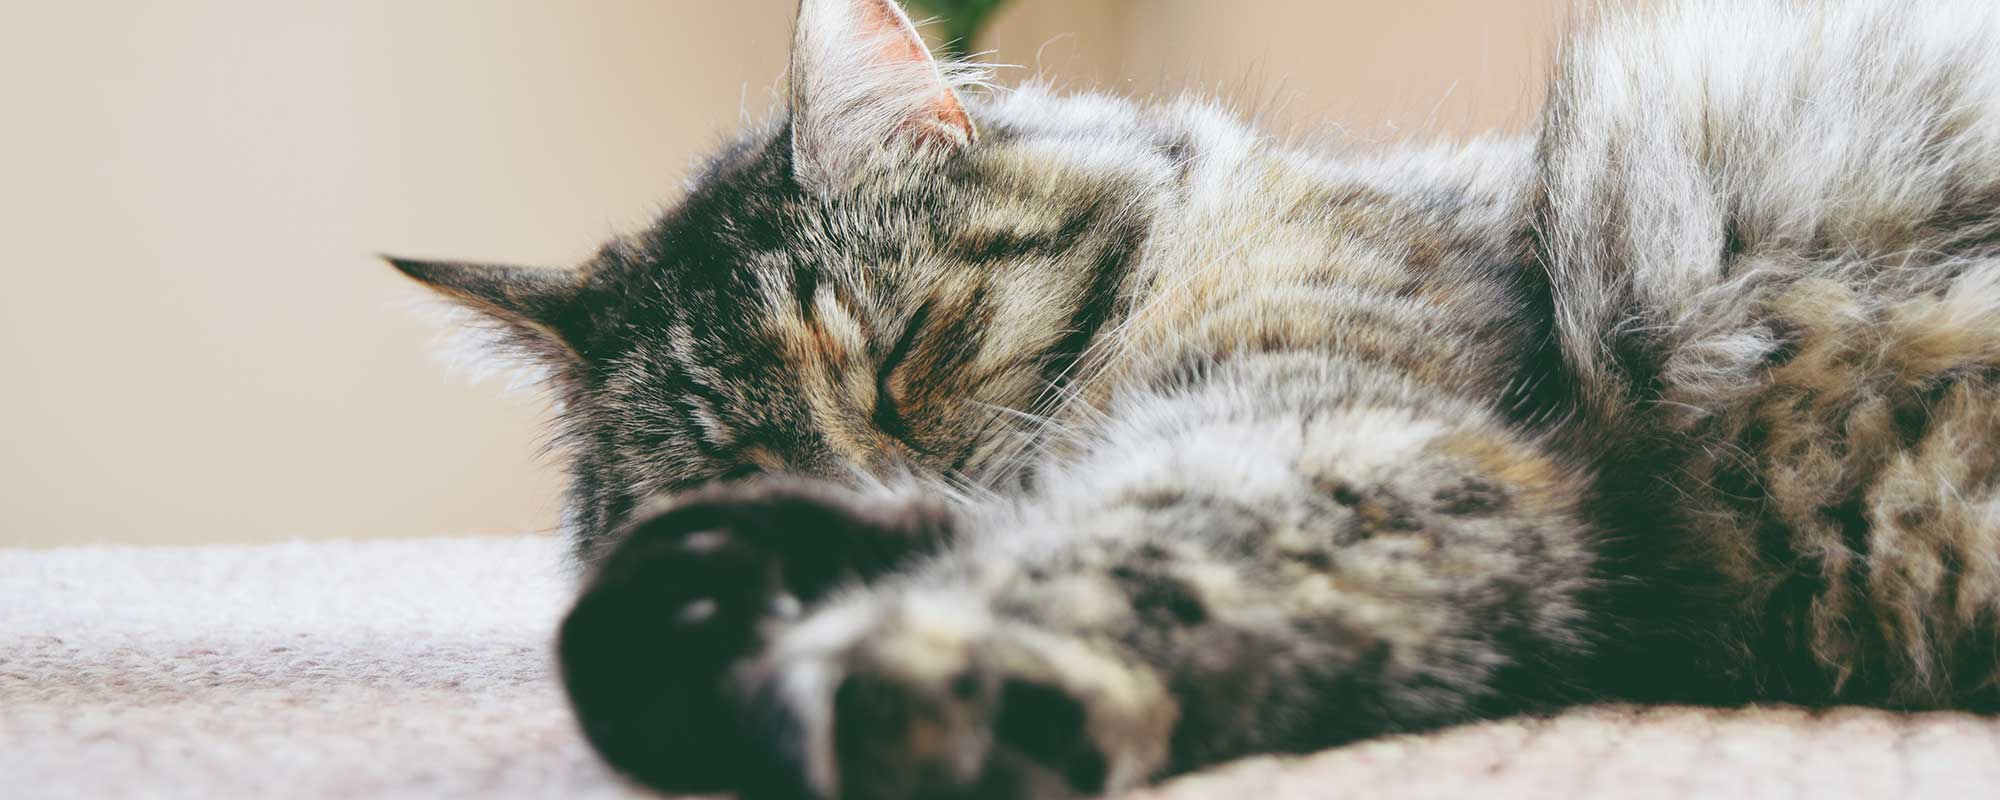 Photo of a beautiful cat peacefully sleeping